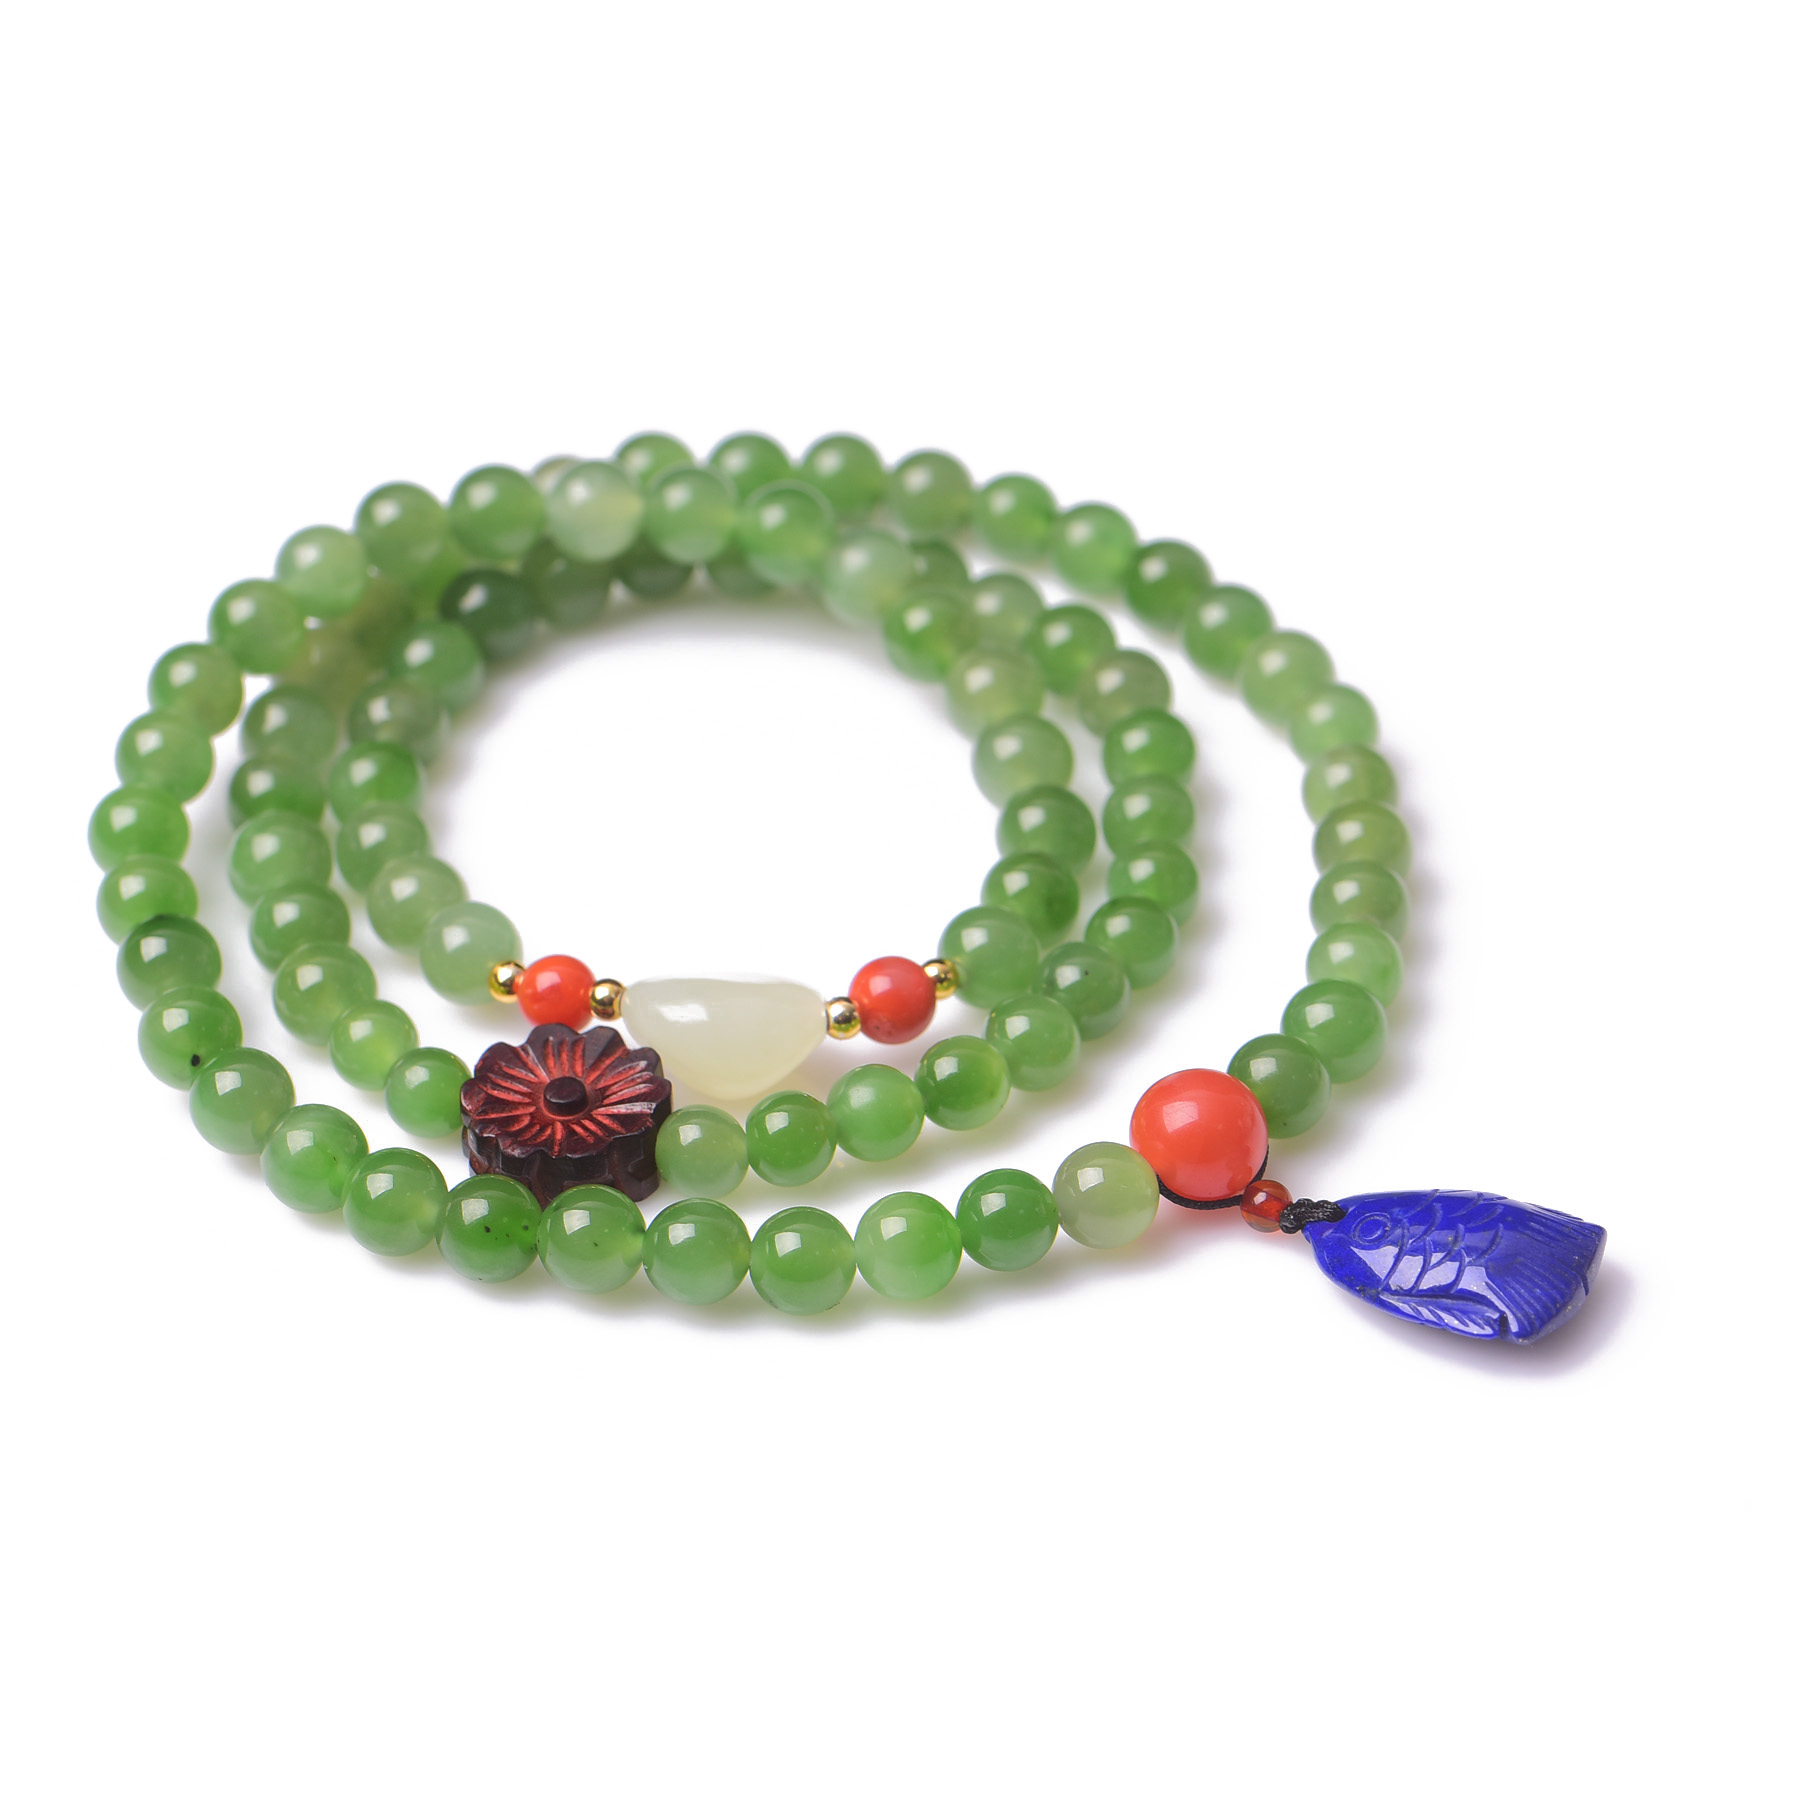 Handmade Authentic Hetian Crystal Beads Bracelets 6mm handmade authentic hetian crystal budda bracelets